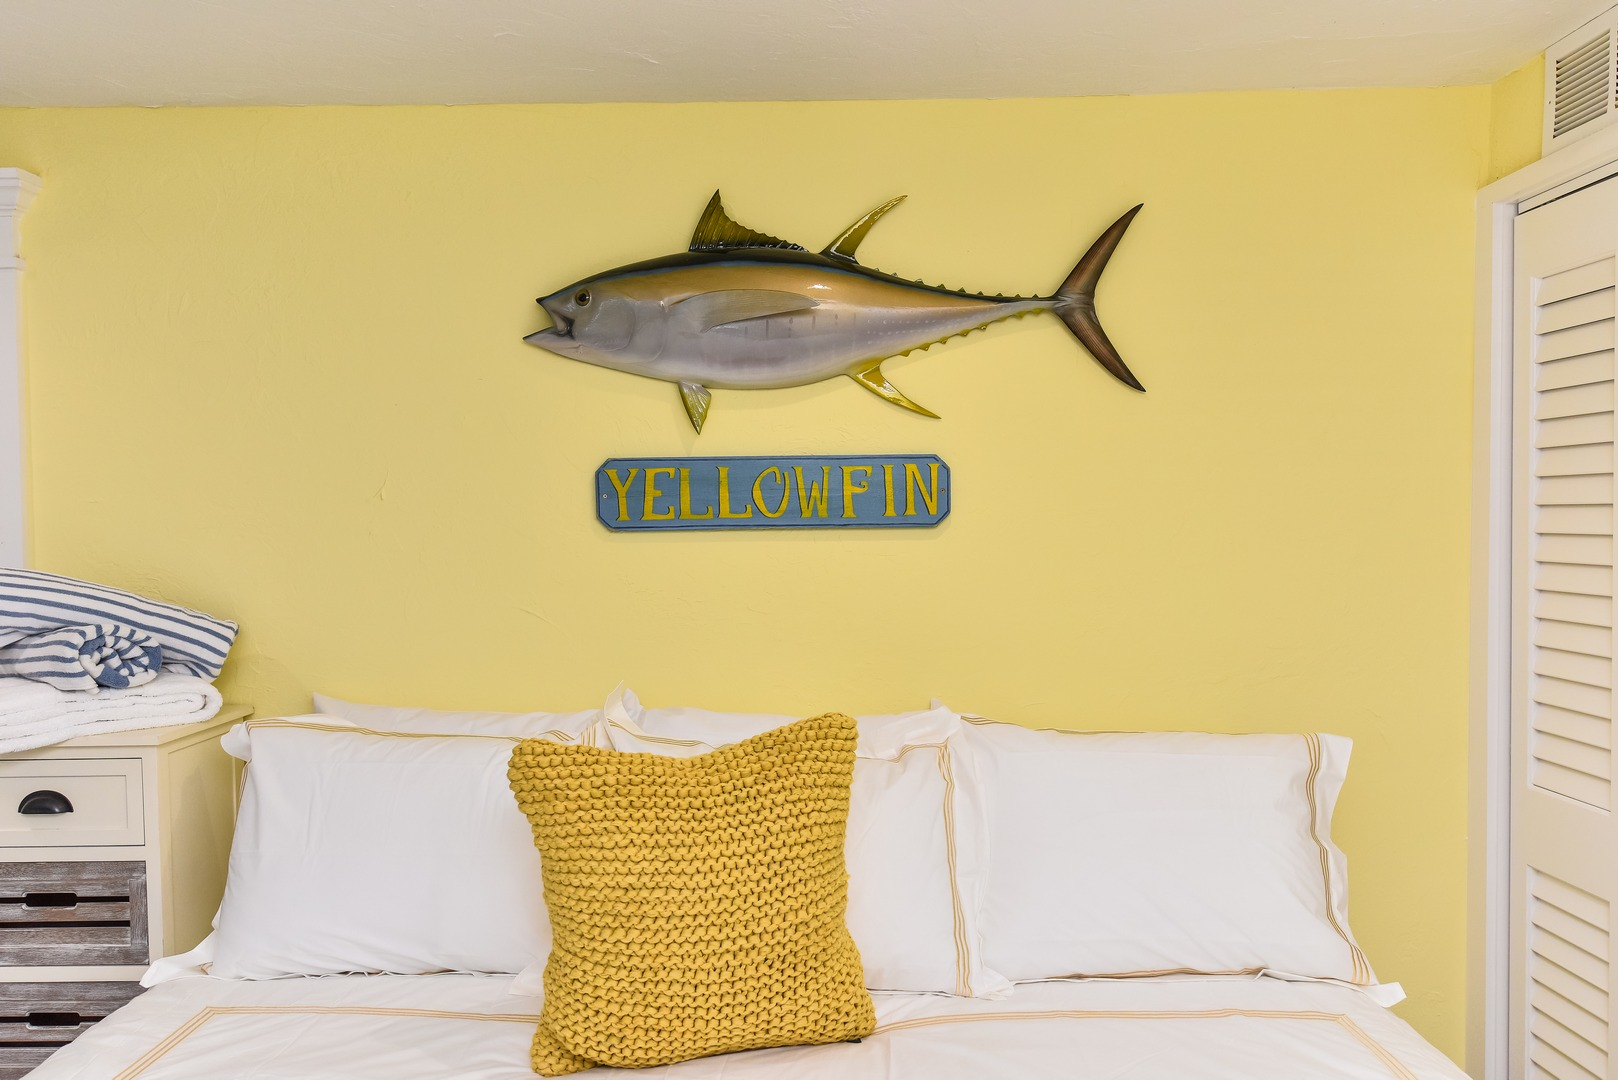 The Yellow Fin - Sleep in Comfort - Upgraded Linens